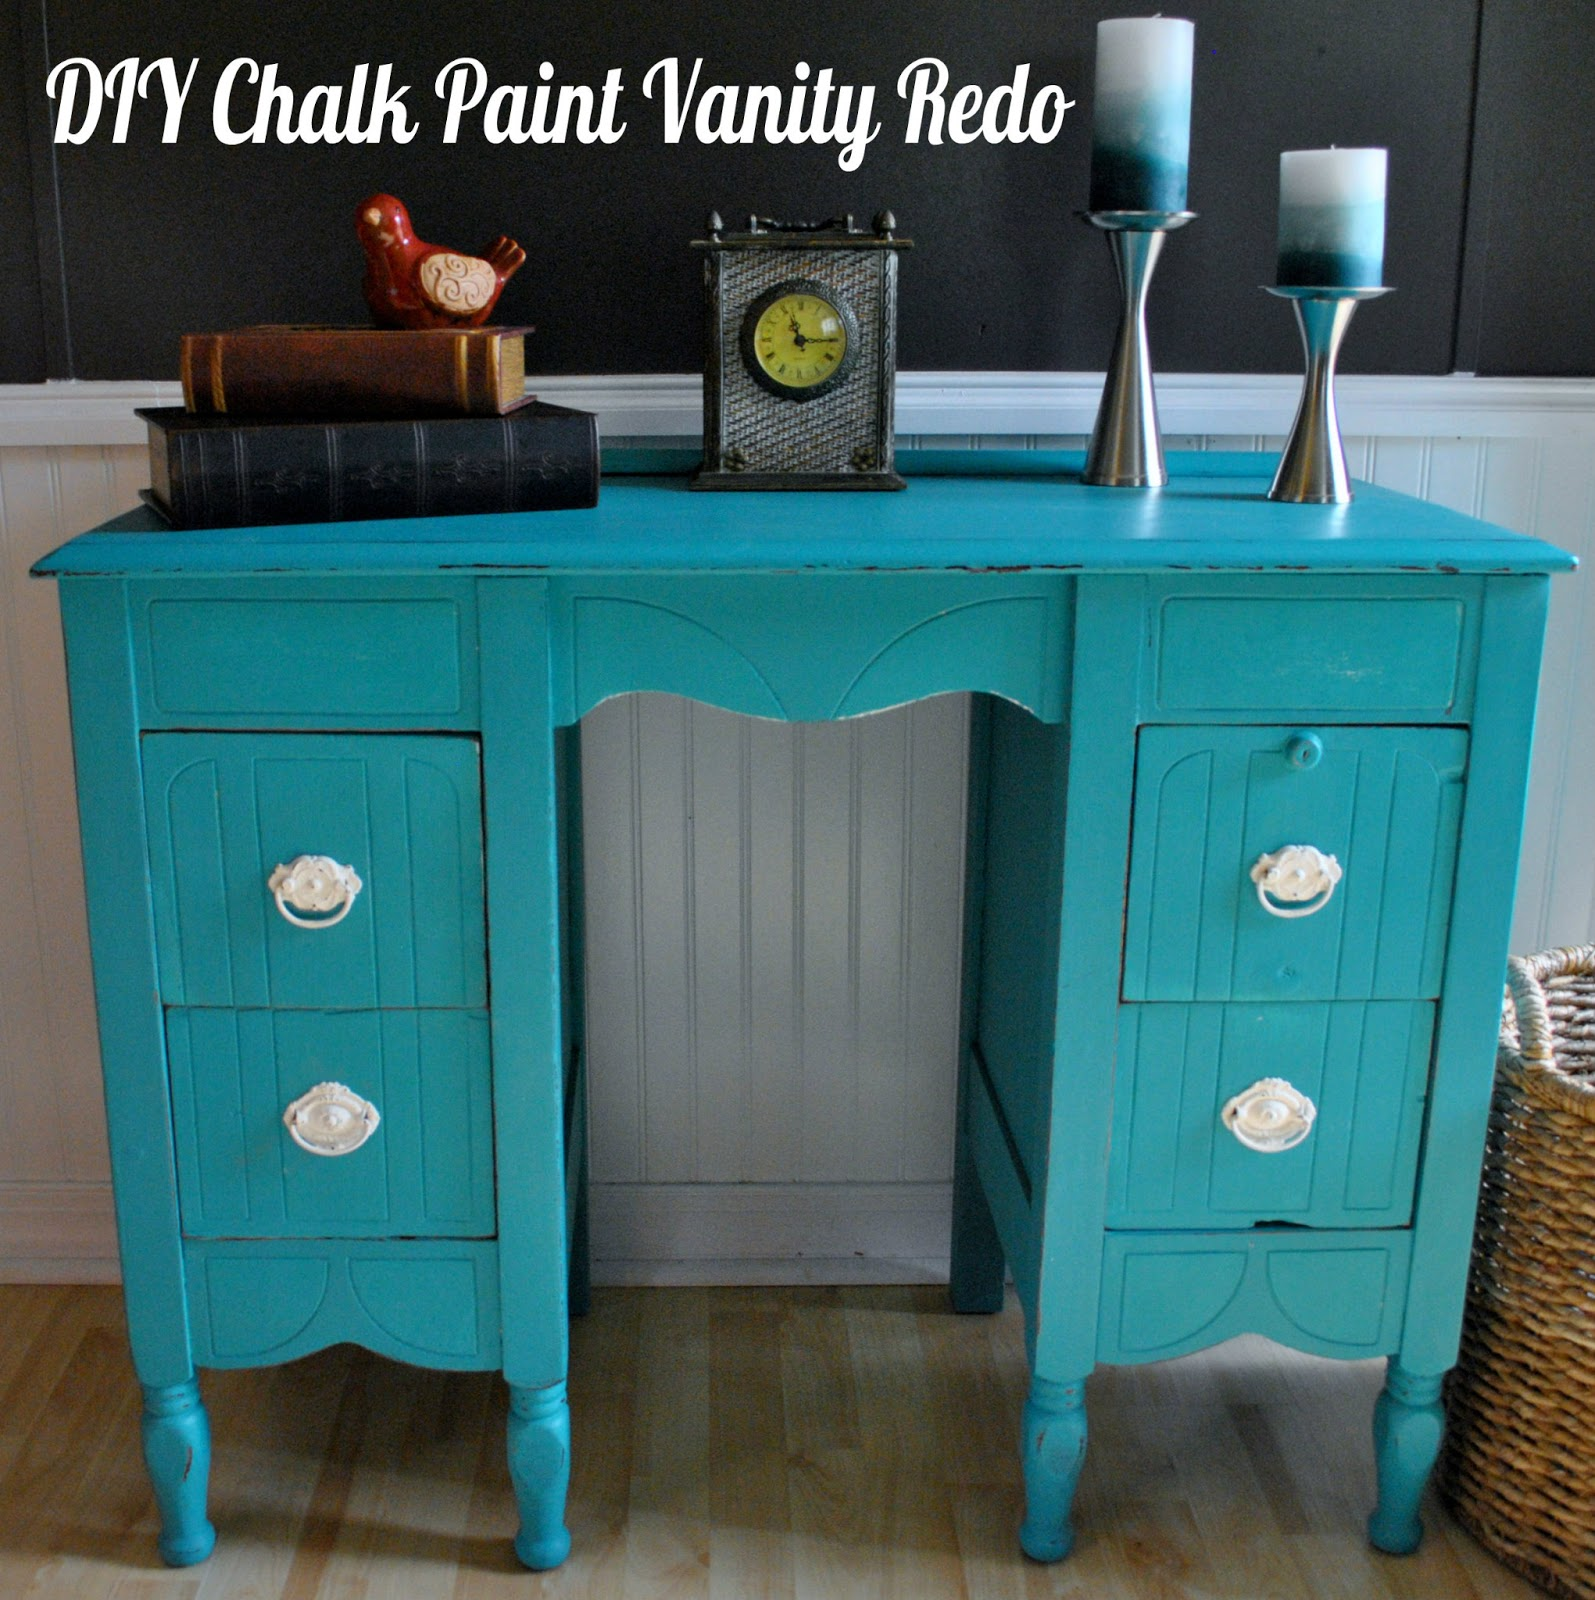 life with 4 boys furniture painting diy chalk paint vanity redo. Black Bedroom Furniture Sets. Home Design Ideas